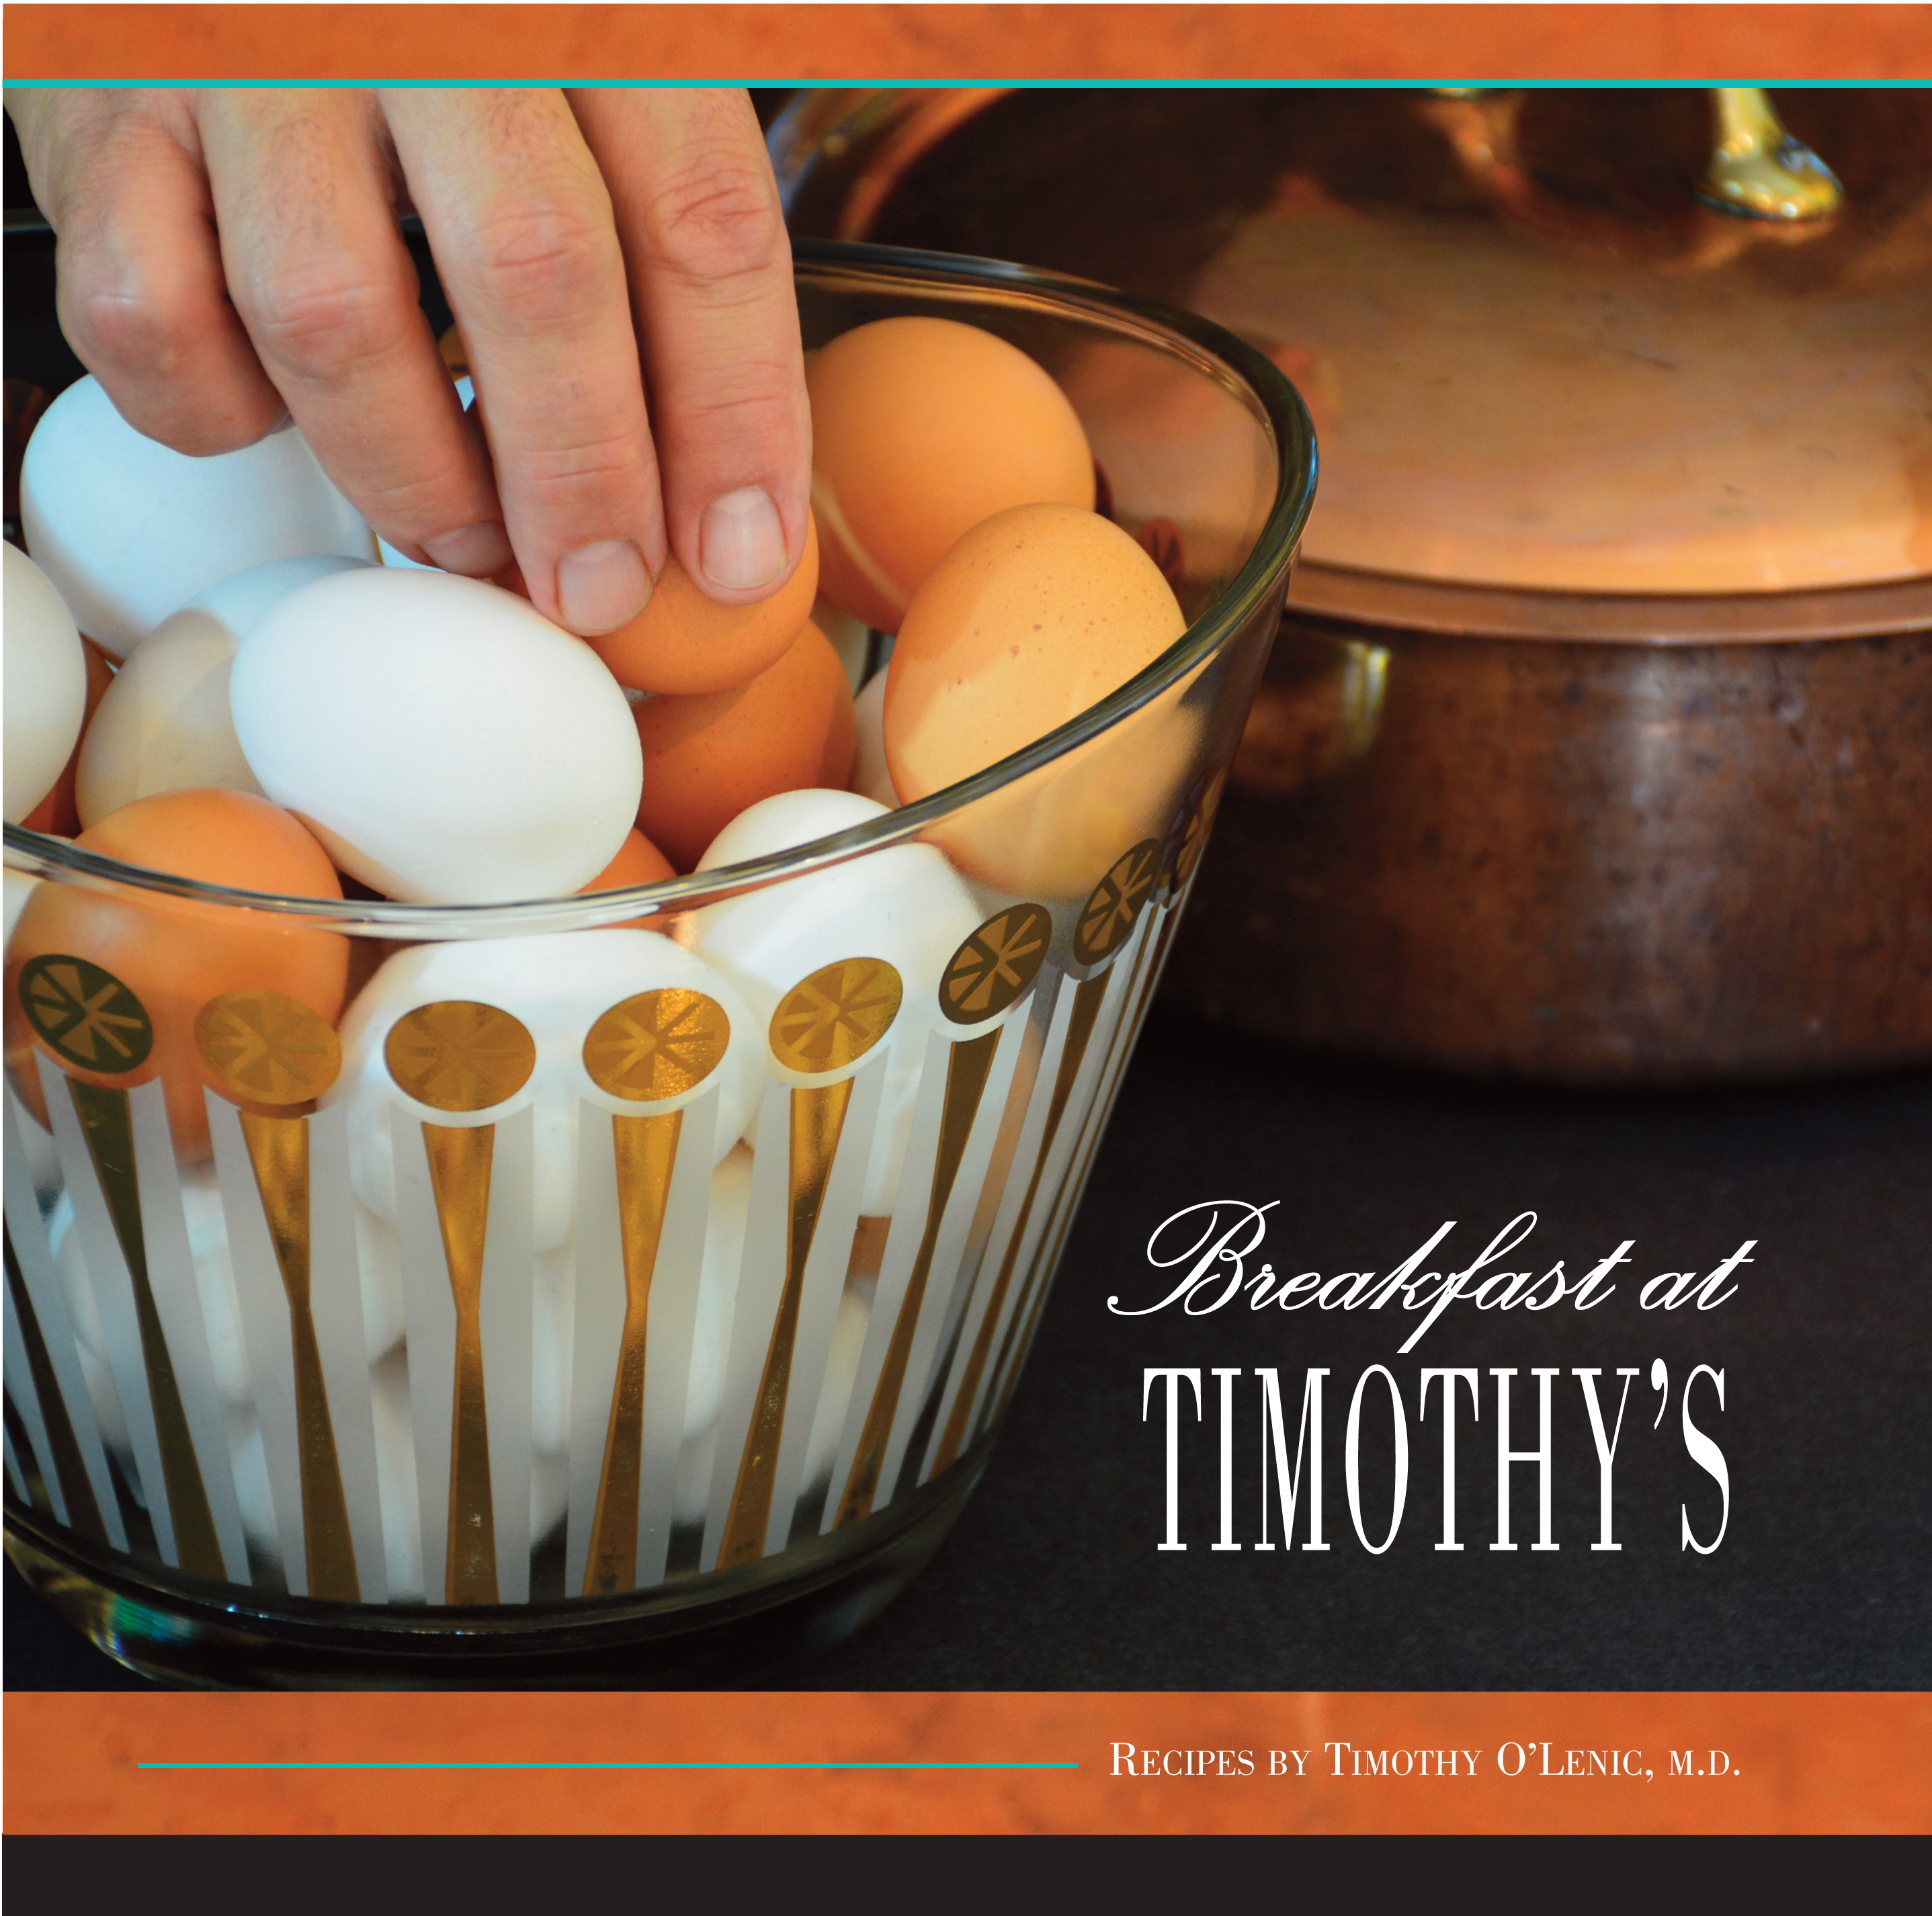 Breakfast at Timothy's